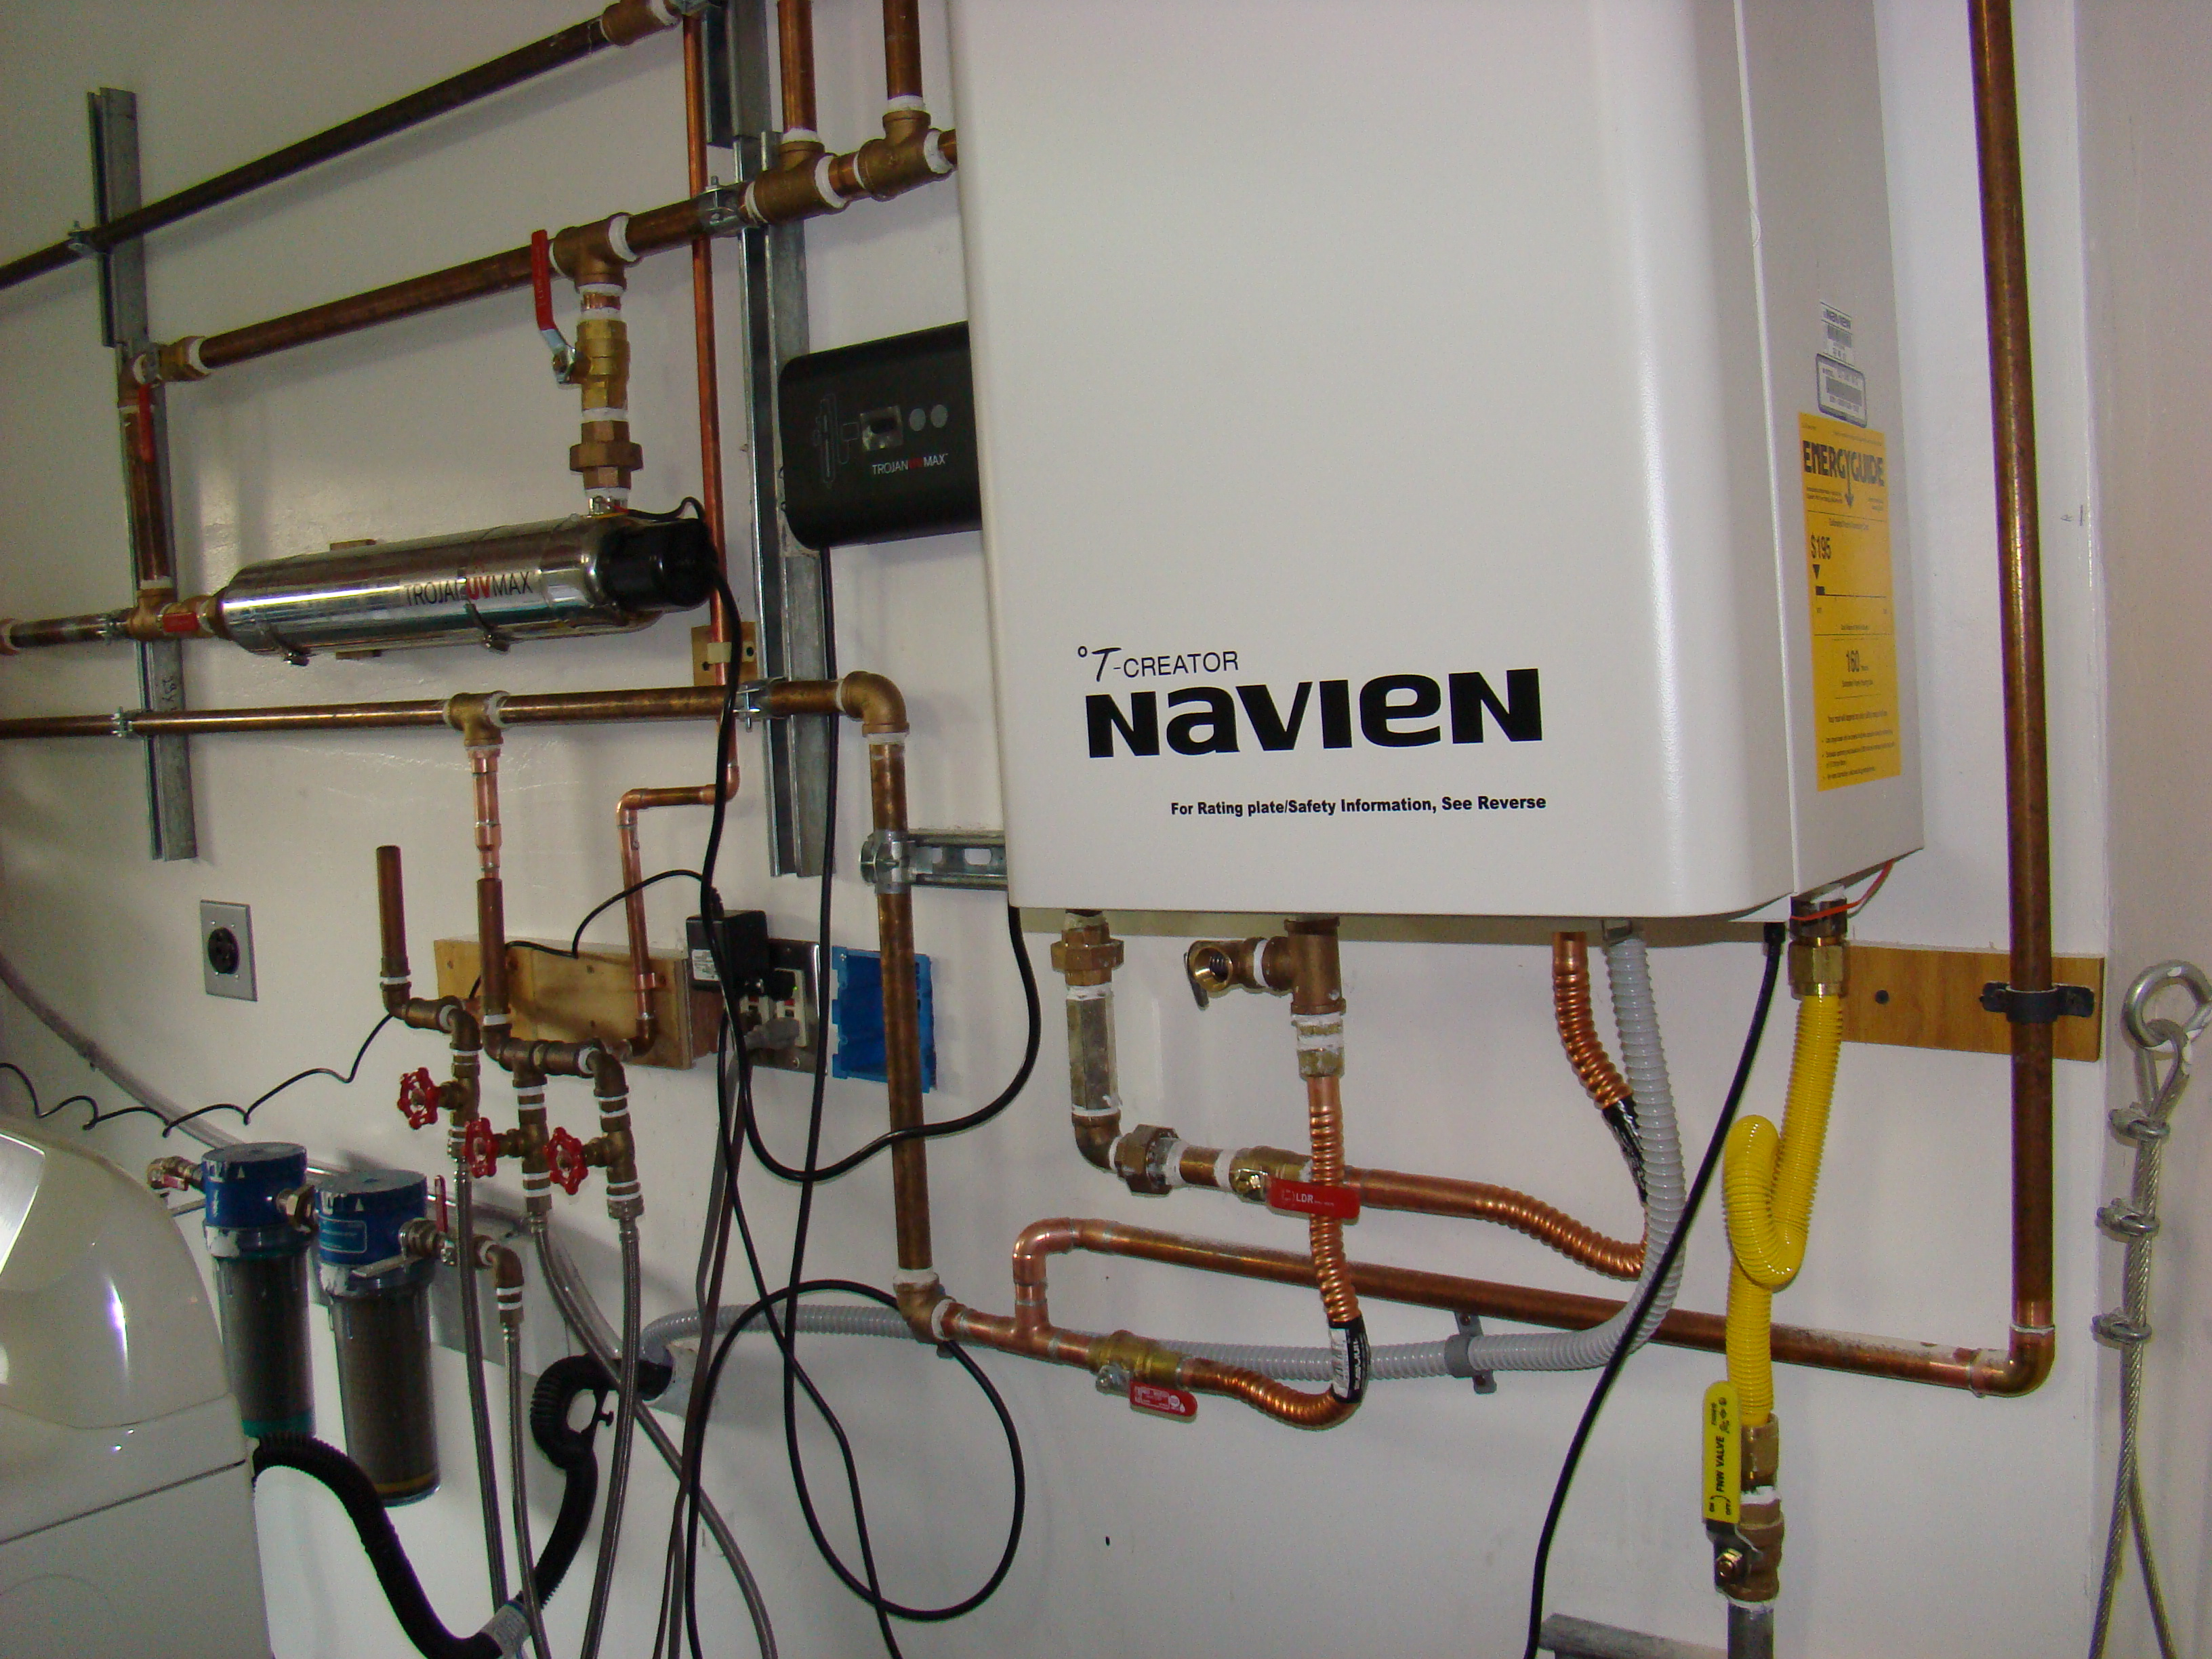 0021 plumber in san antonio and tankless water heater installer local navien wiring diagram at soozxer.org